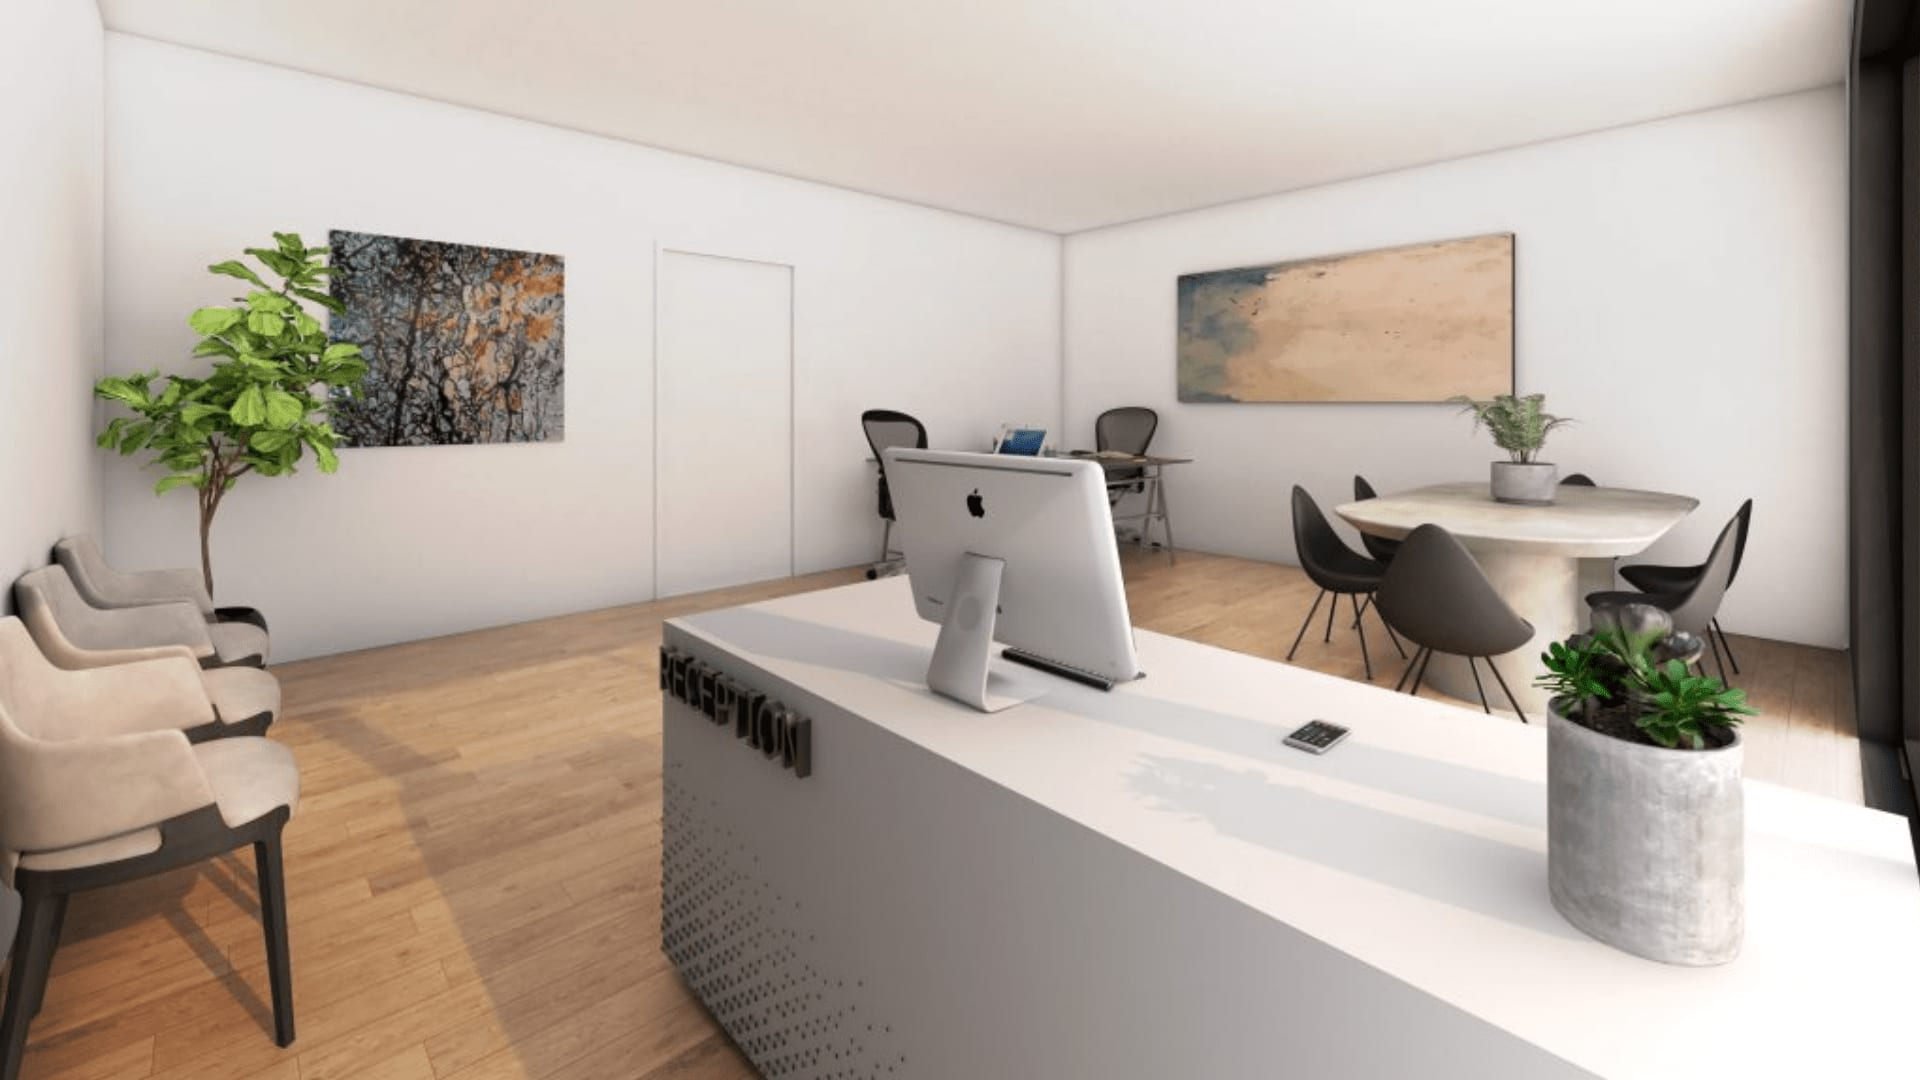 Photorealistic 3d Render of Architecturally Designed Commercial Reception Area